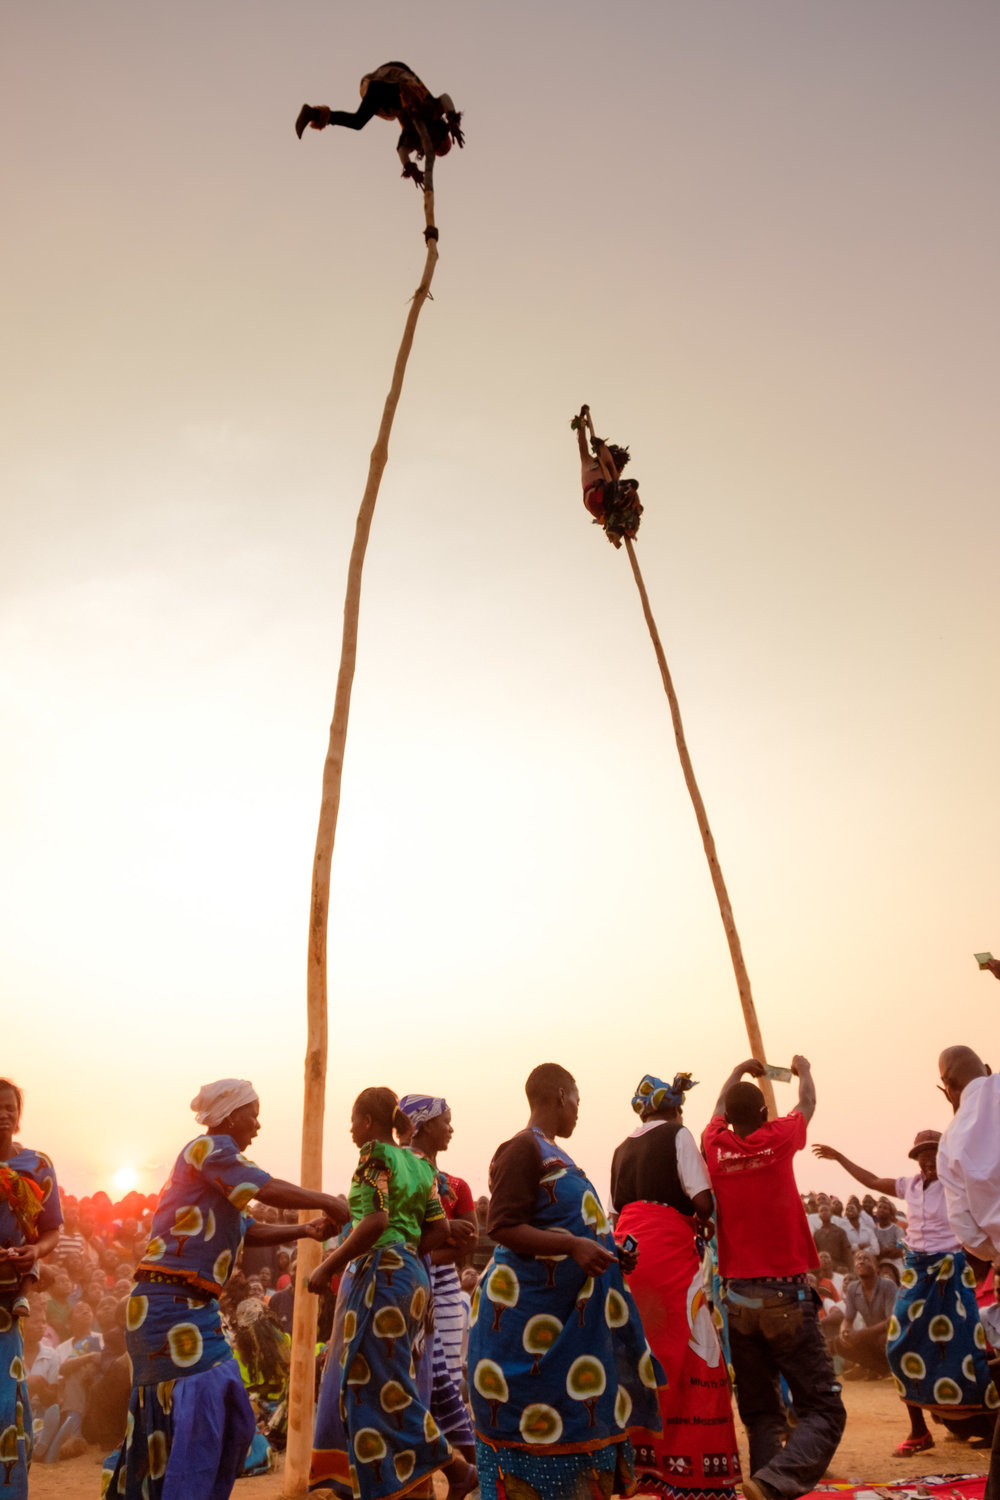 The crowd surrounded the poles and danced as the masked dancers swung above them!